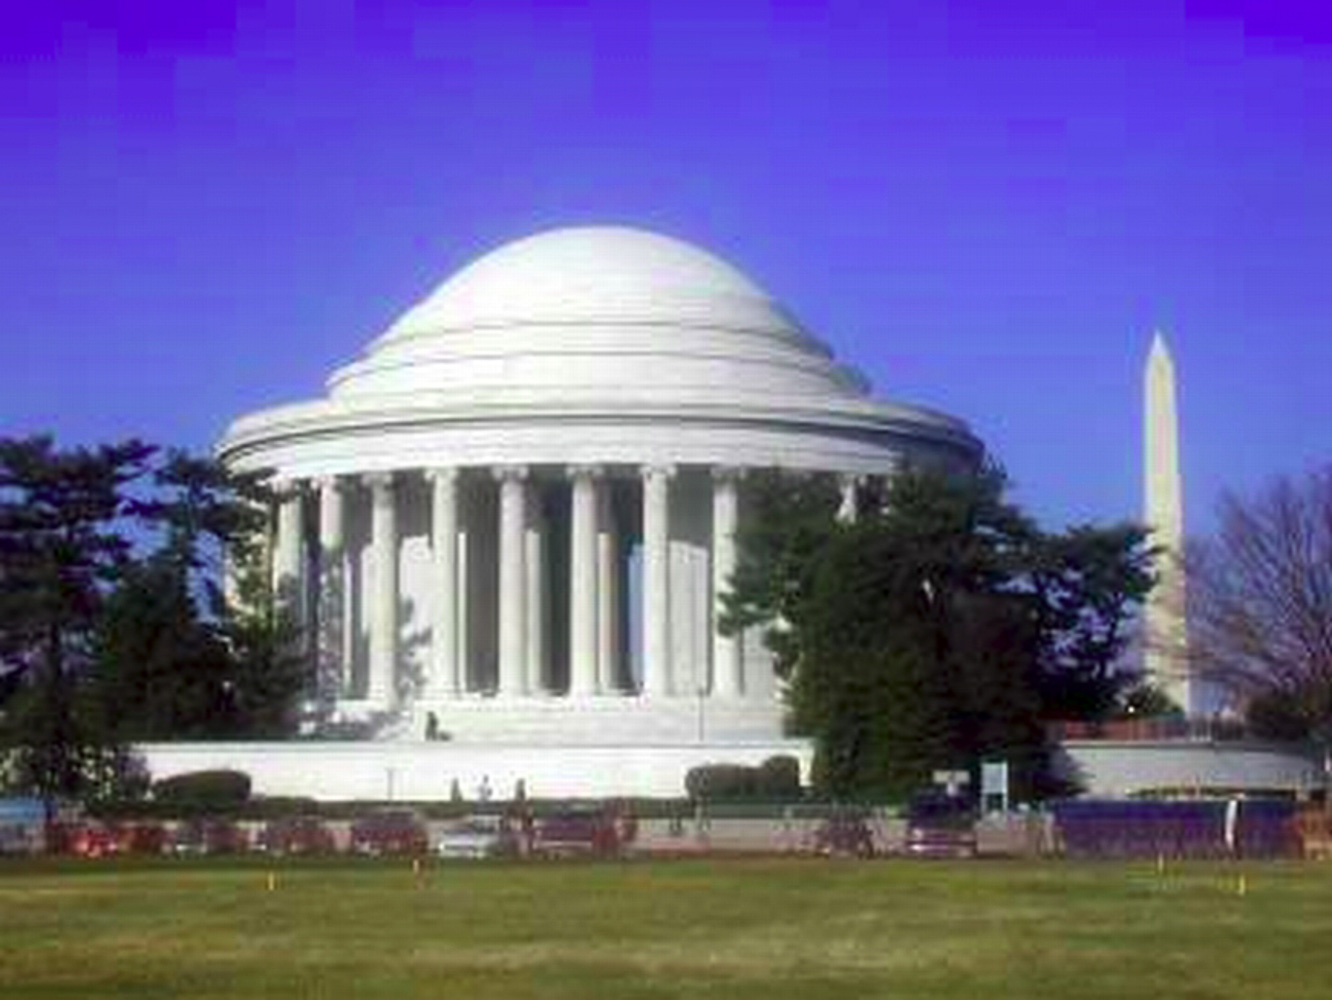 Washington DC, Washington monument, Jeffereson memorial